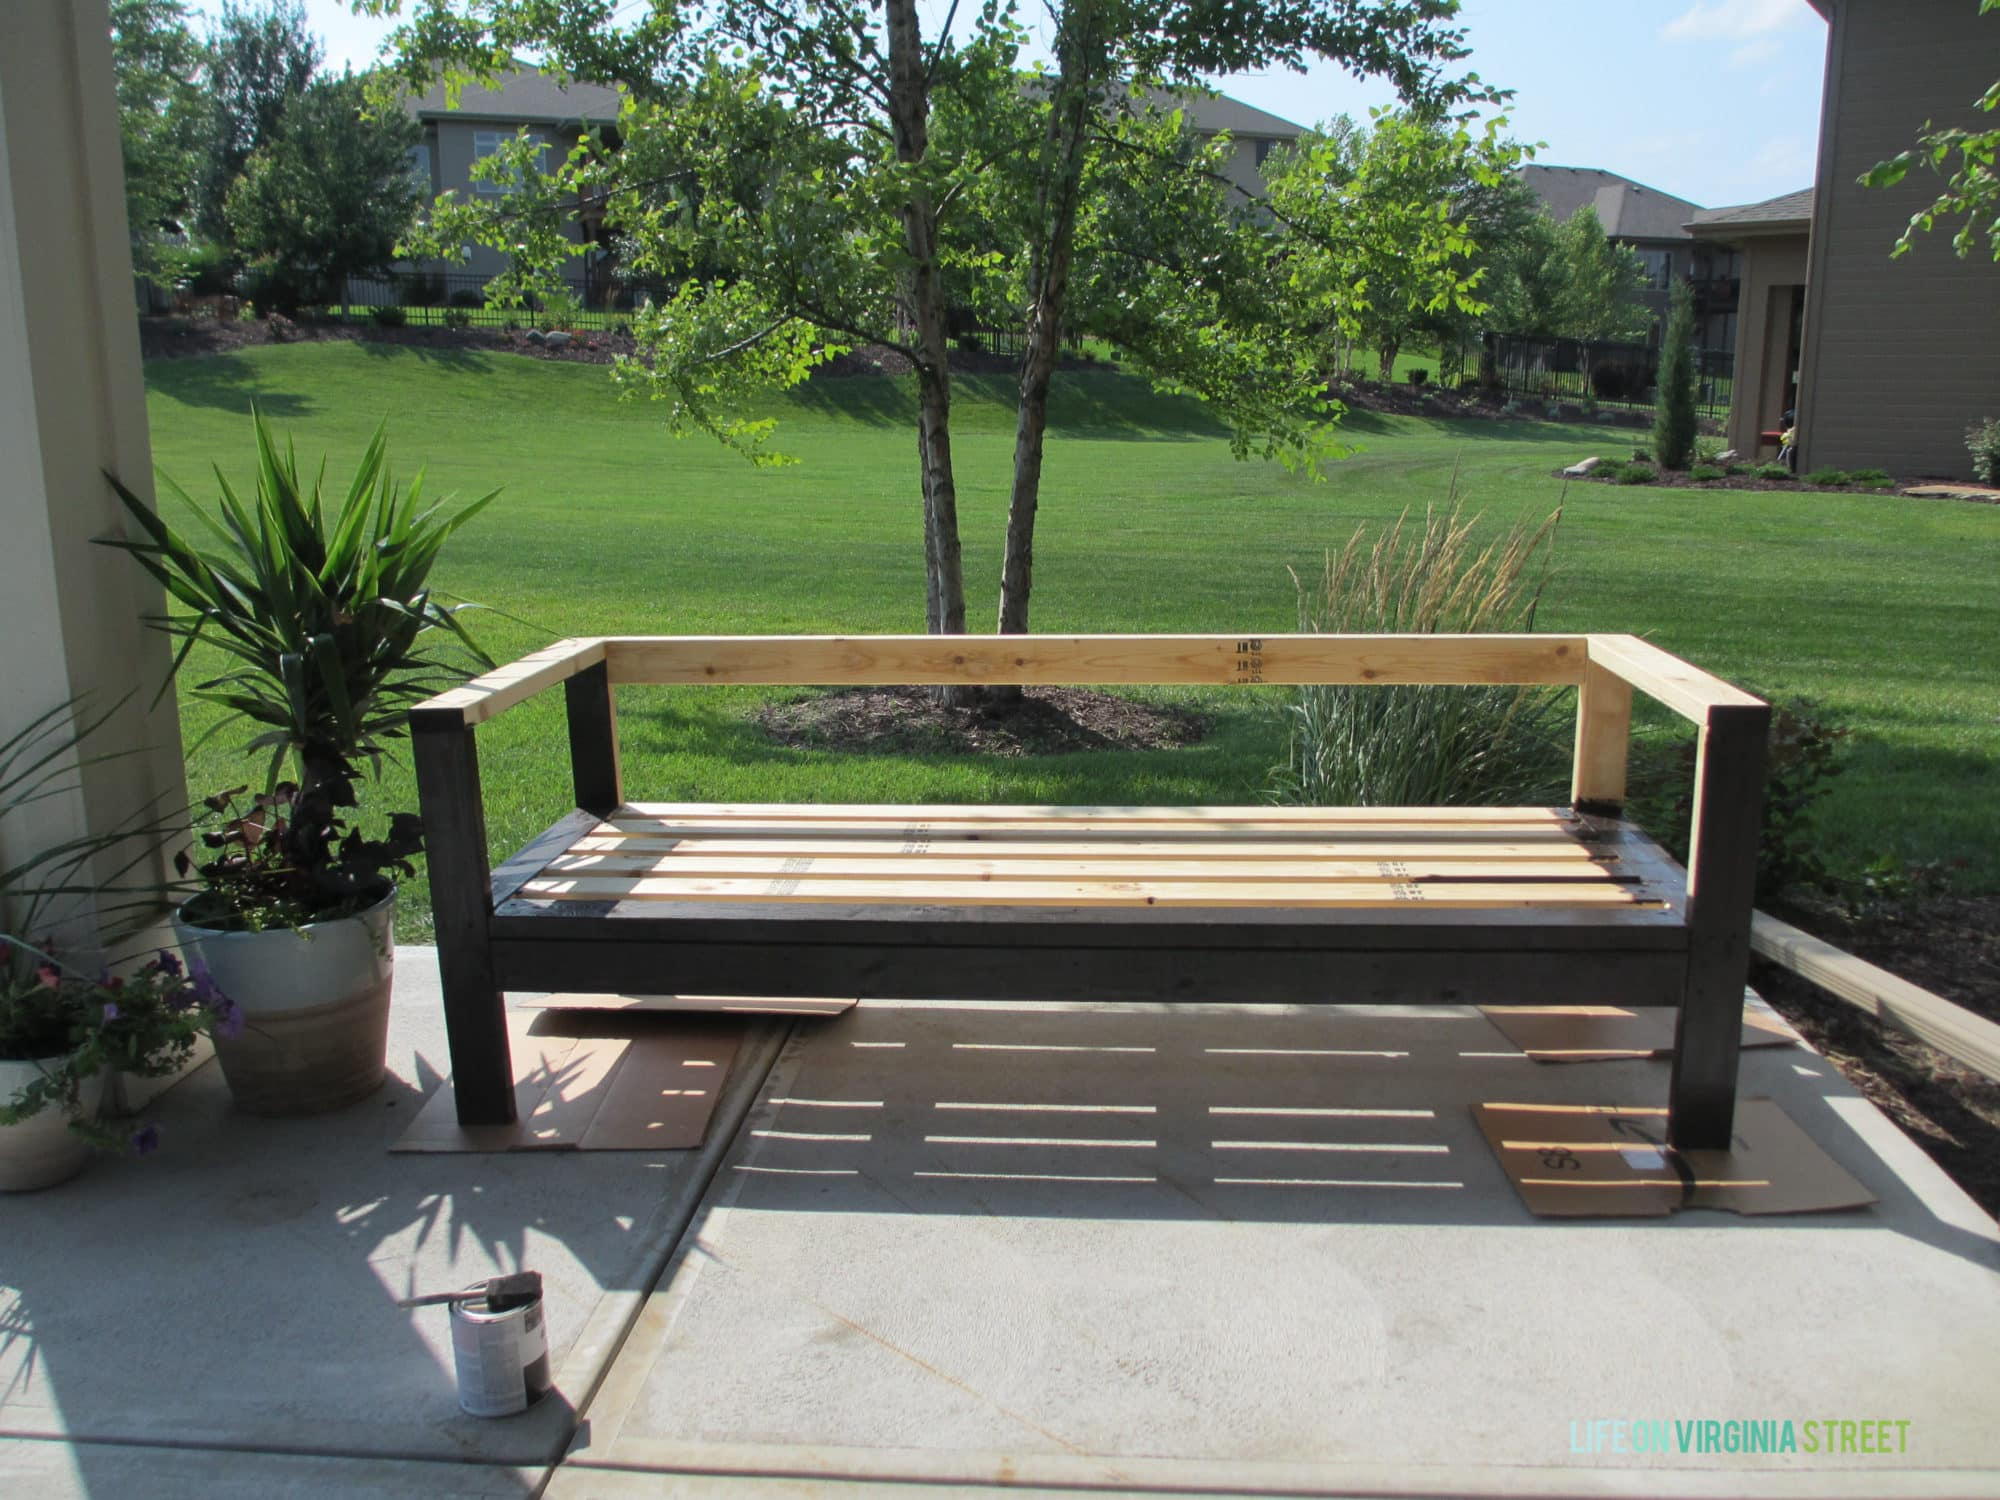 Diy sofa plans build your own couch build your own couch with - Diy Outdoor Couch Wood Stain